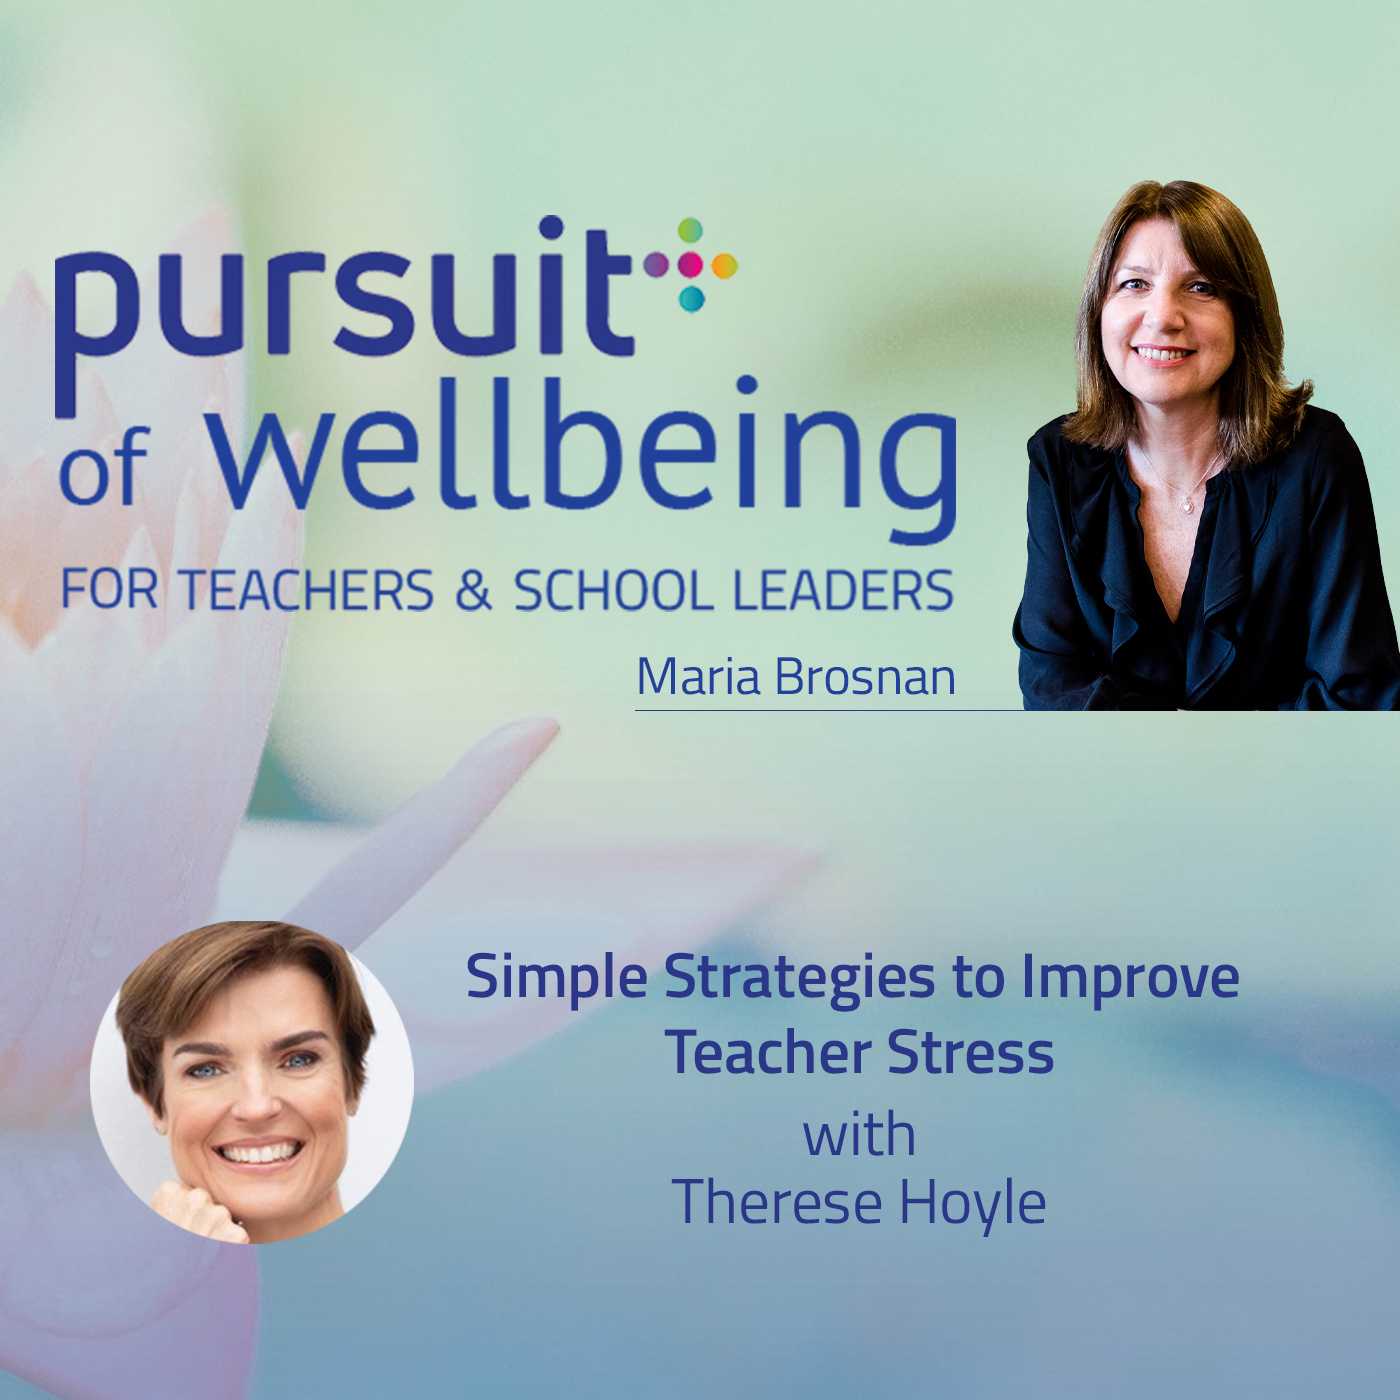 Simple Strategies to Improve Teacher Stress with Therese Hoyle